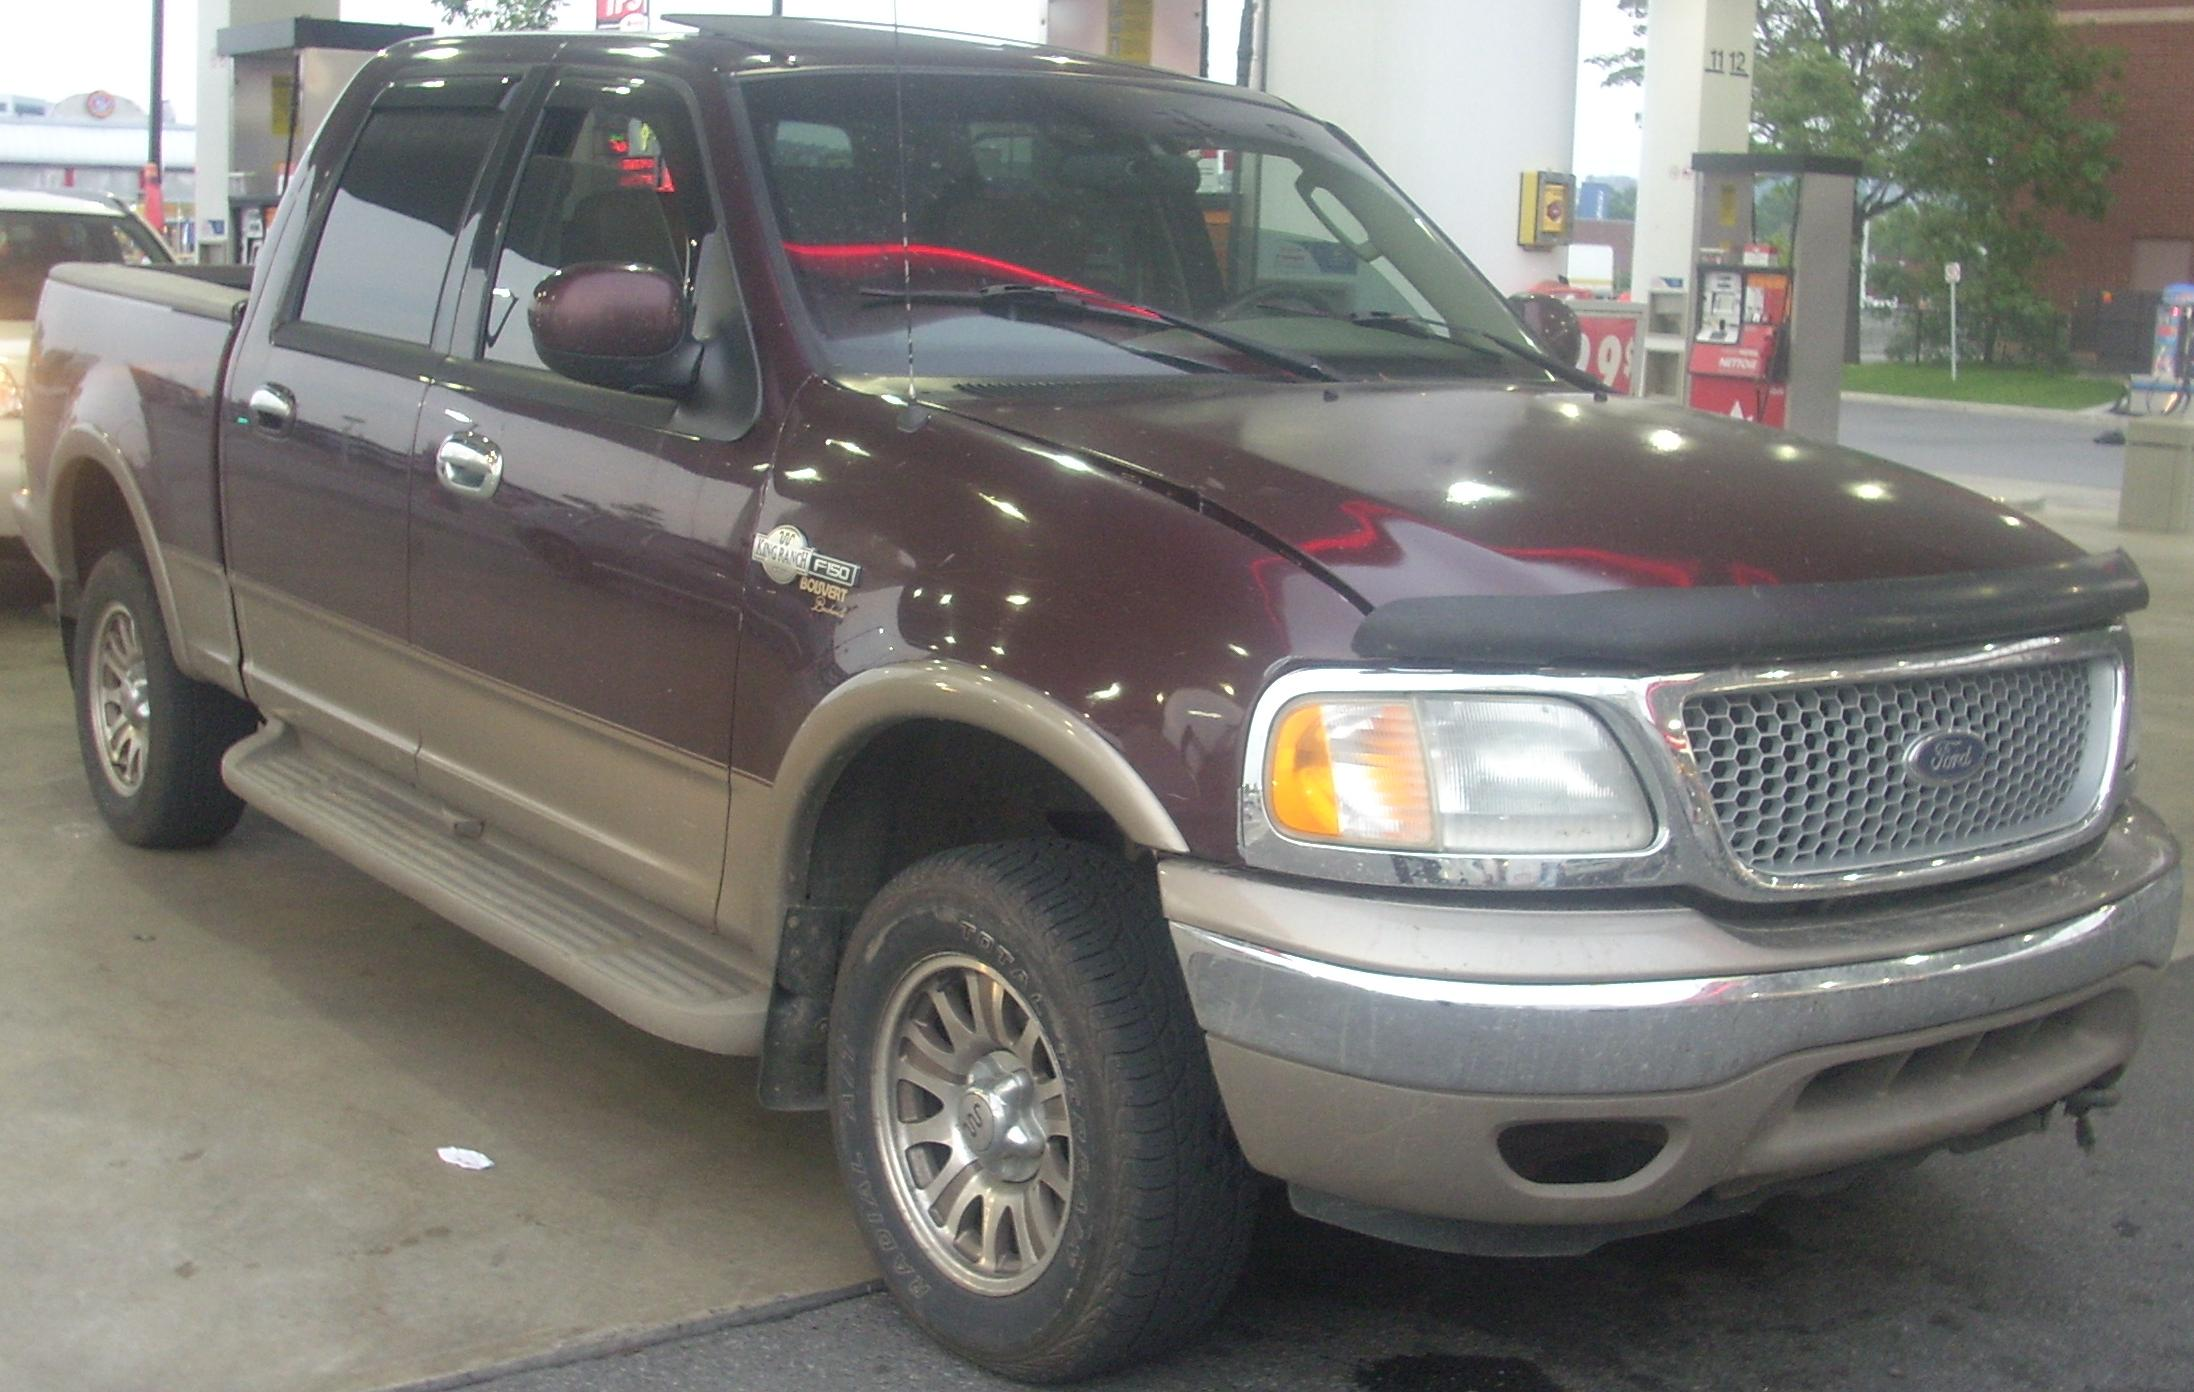 2003 Ford F150 >> File:'01-'03 Ford F-150 King Ranch.jpg - Wikimedia Commons